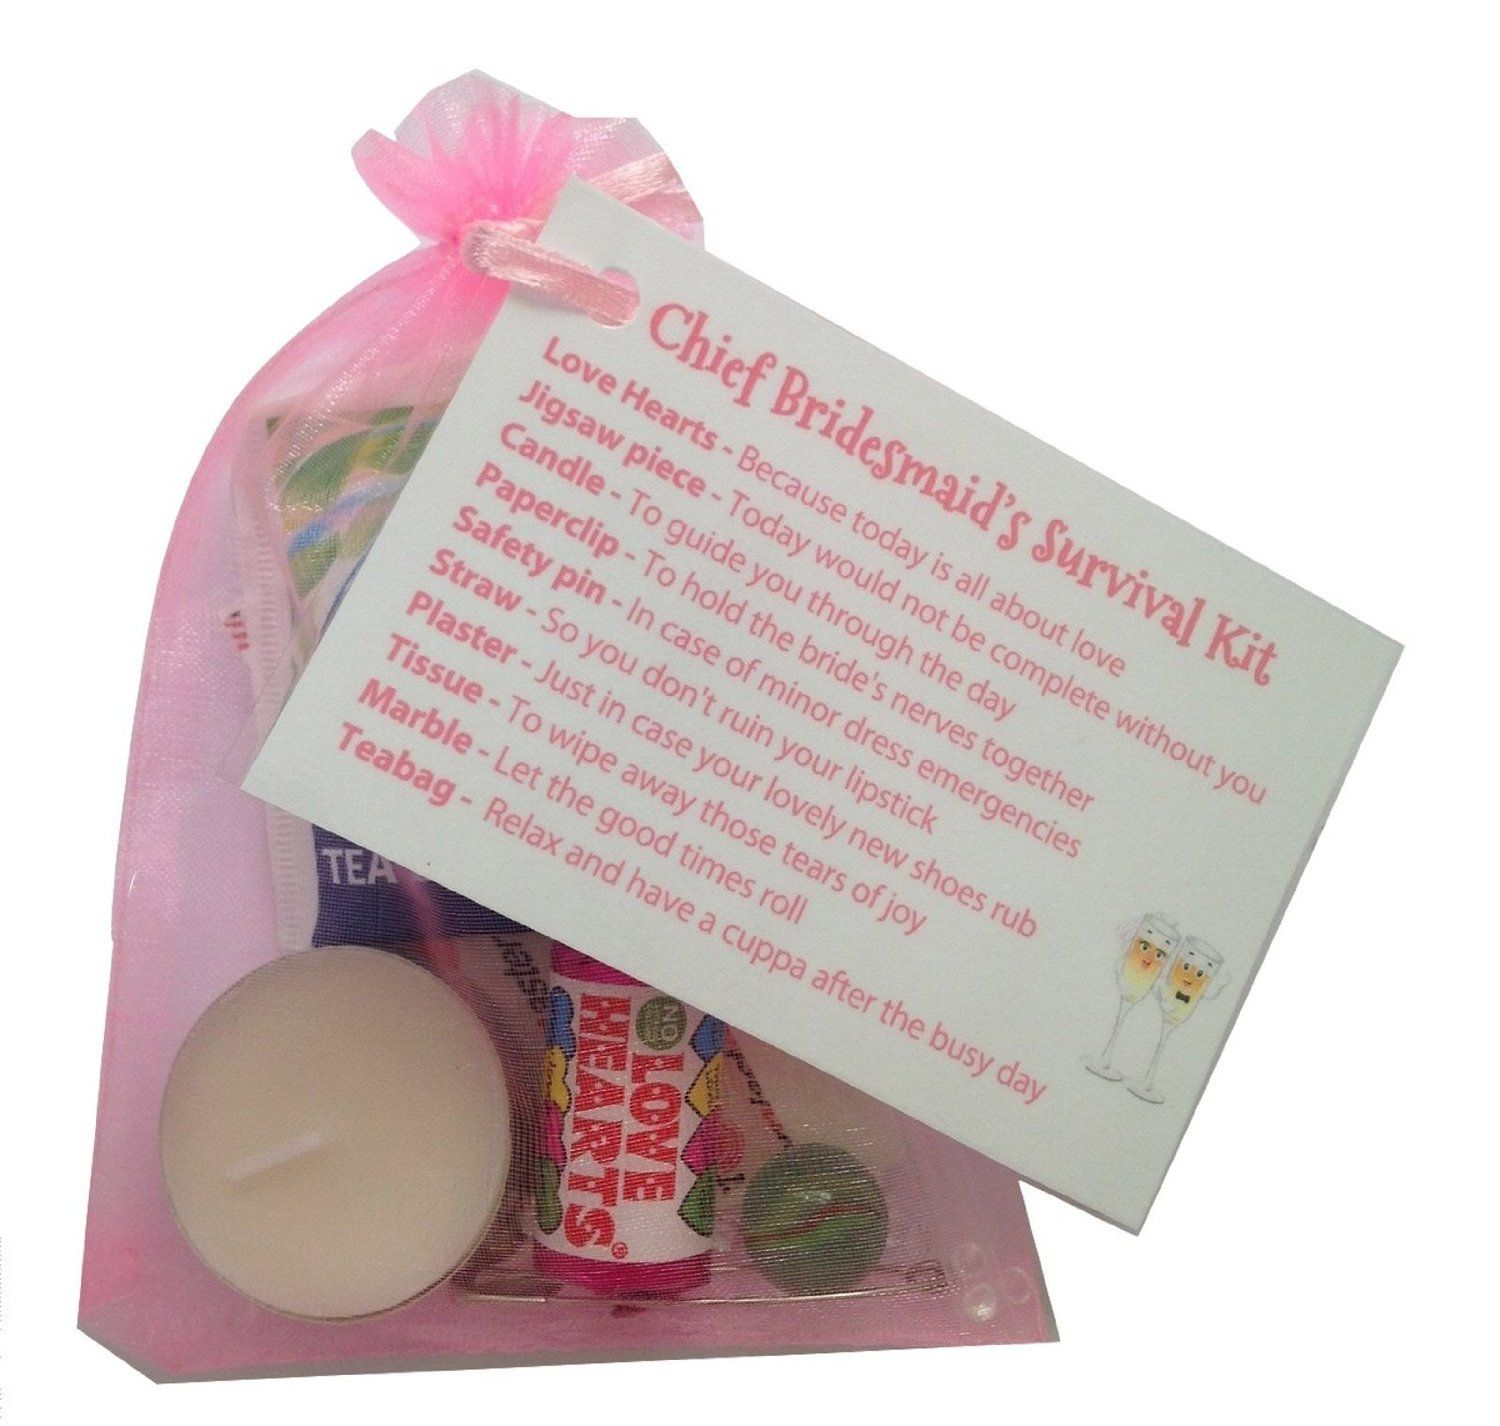 Chief Bridesmaid Survival Kit In Pink Thank You Gift Card Keepsake